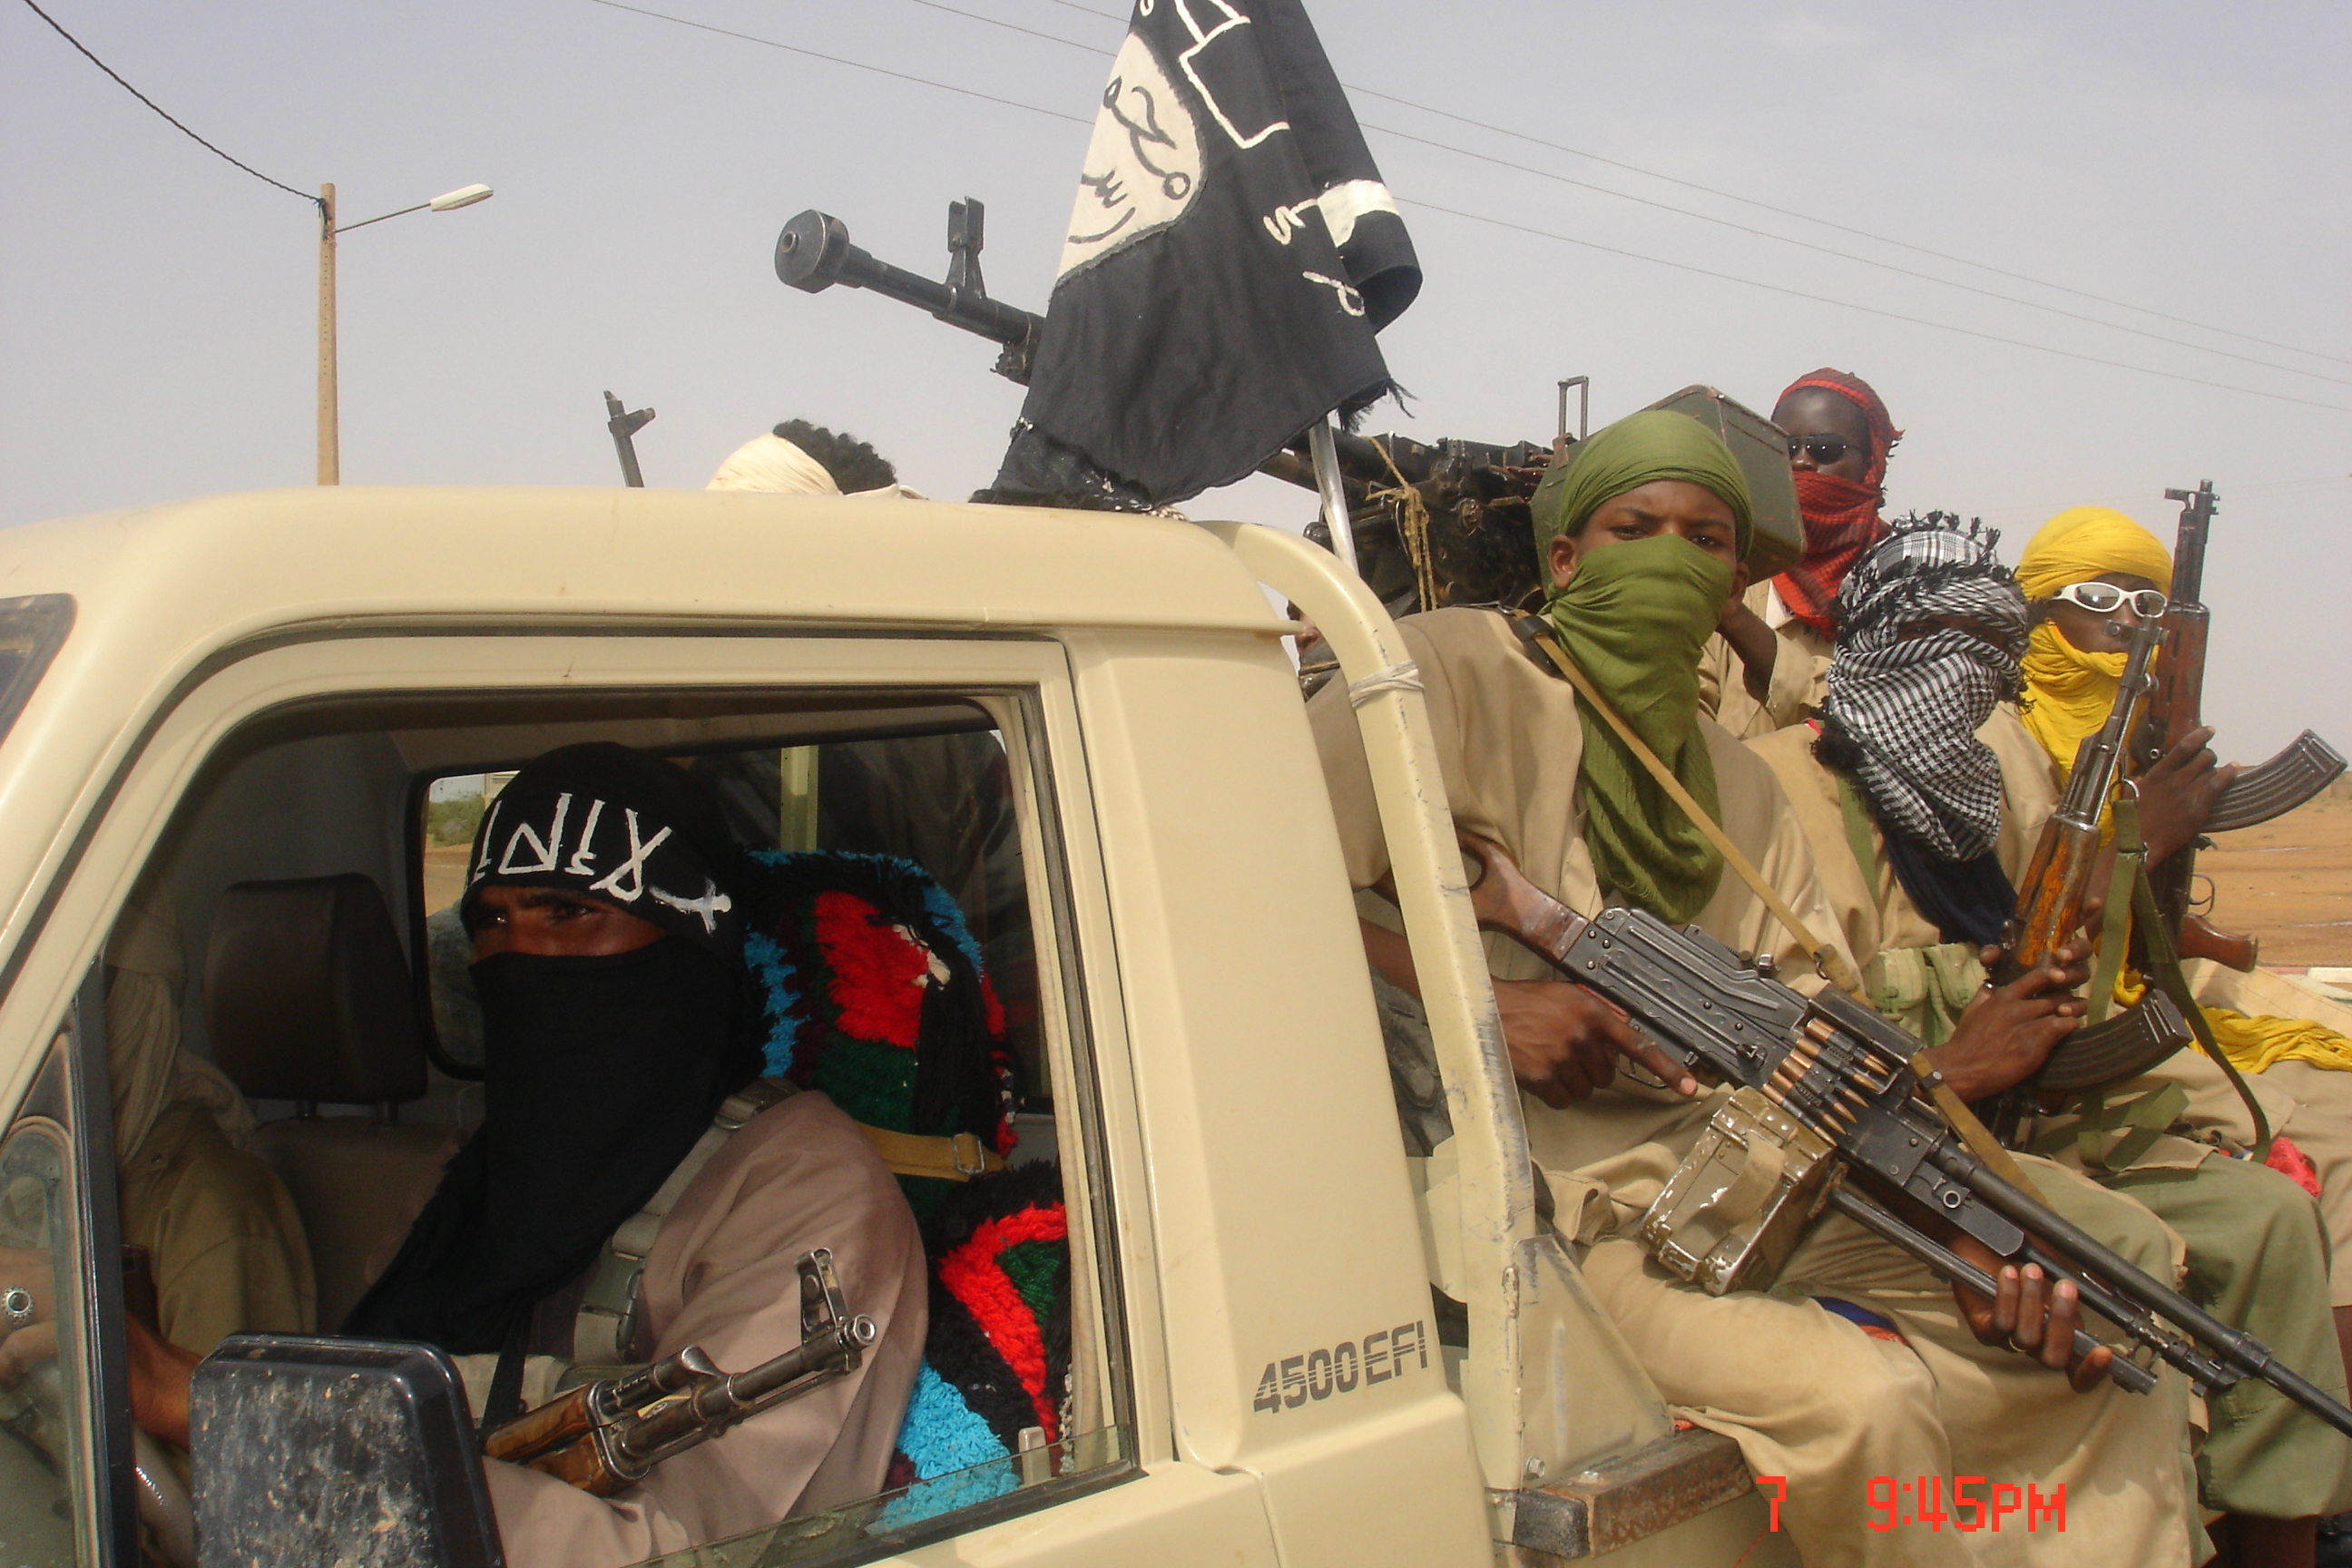 Members of Islamist group Movement for Unity and Jihad in West Africa (MUJAO), which is in control of much of northern Mali and has imposed Sharia law